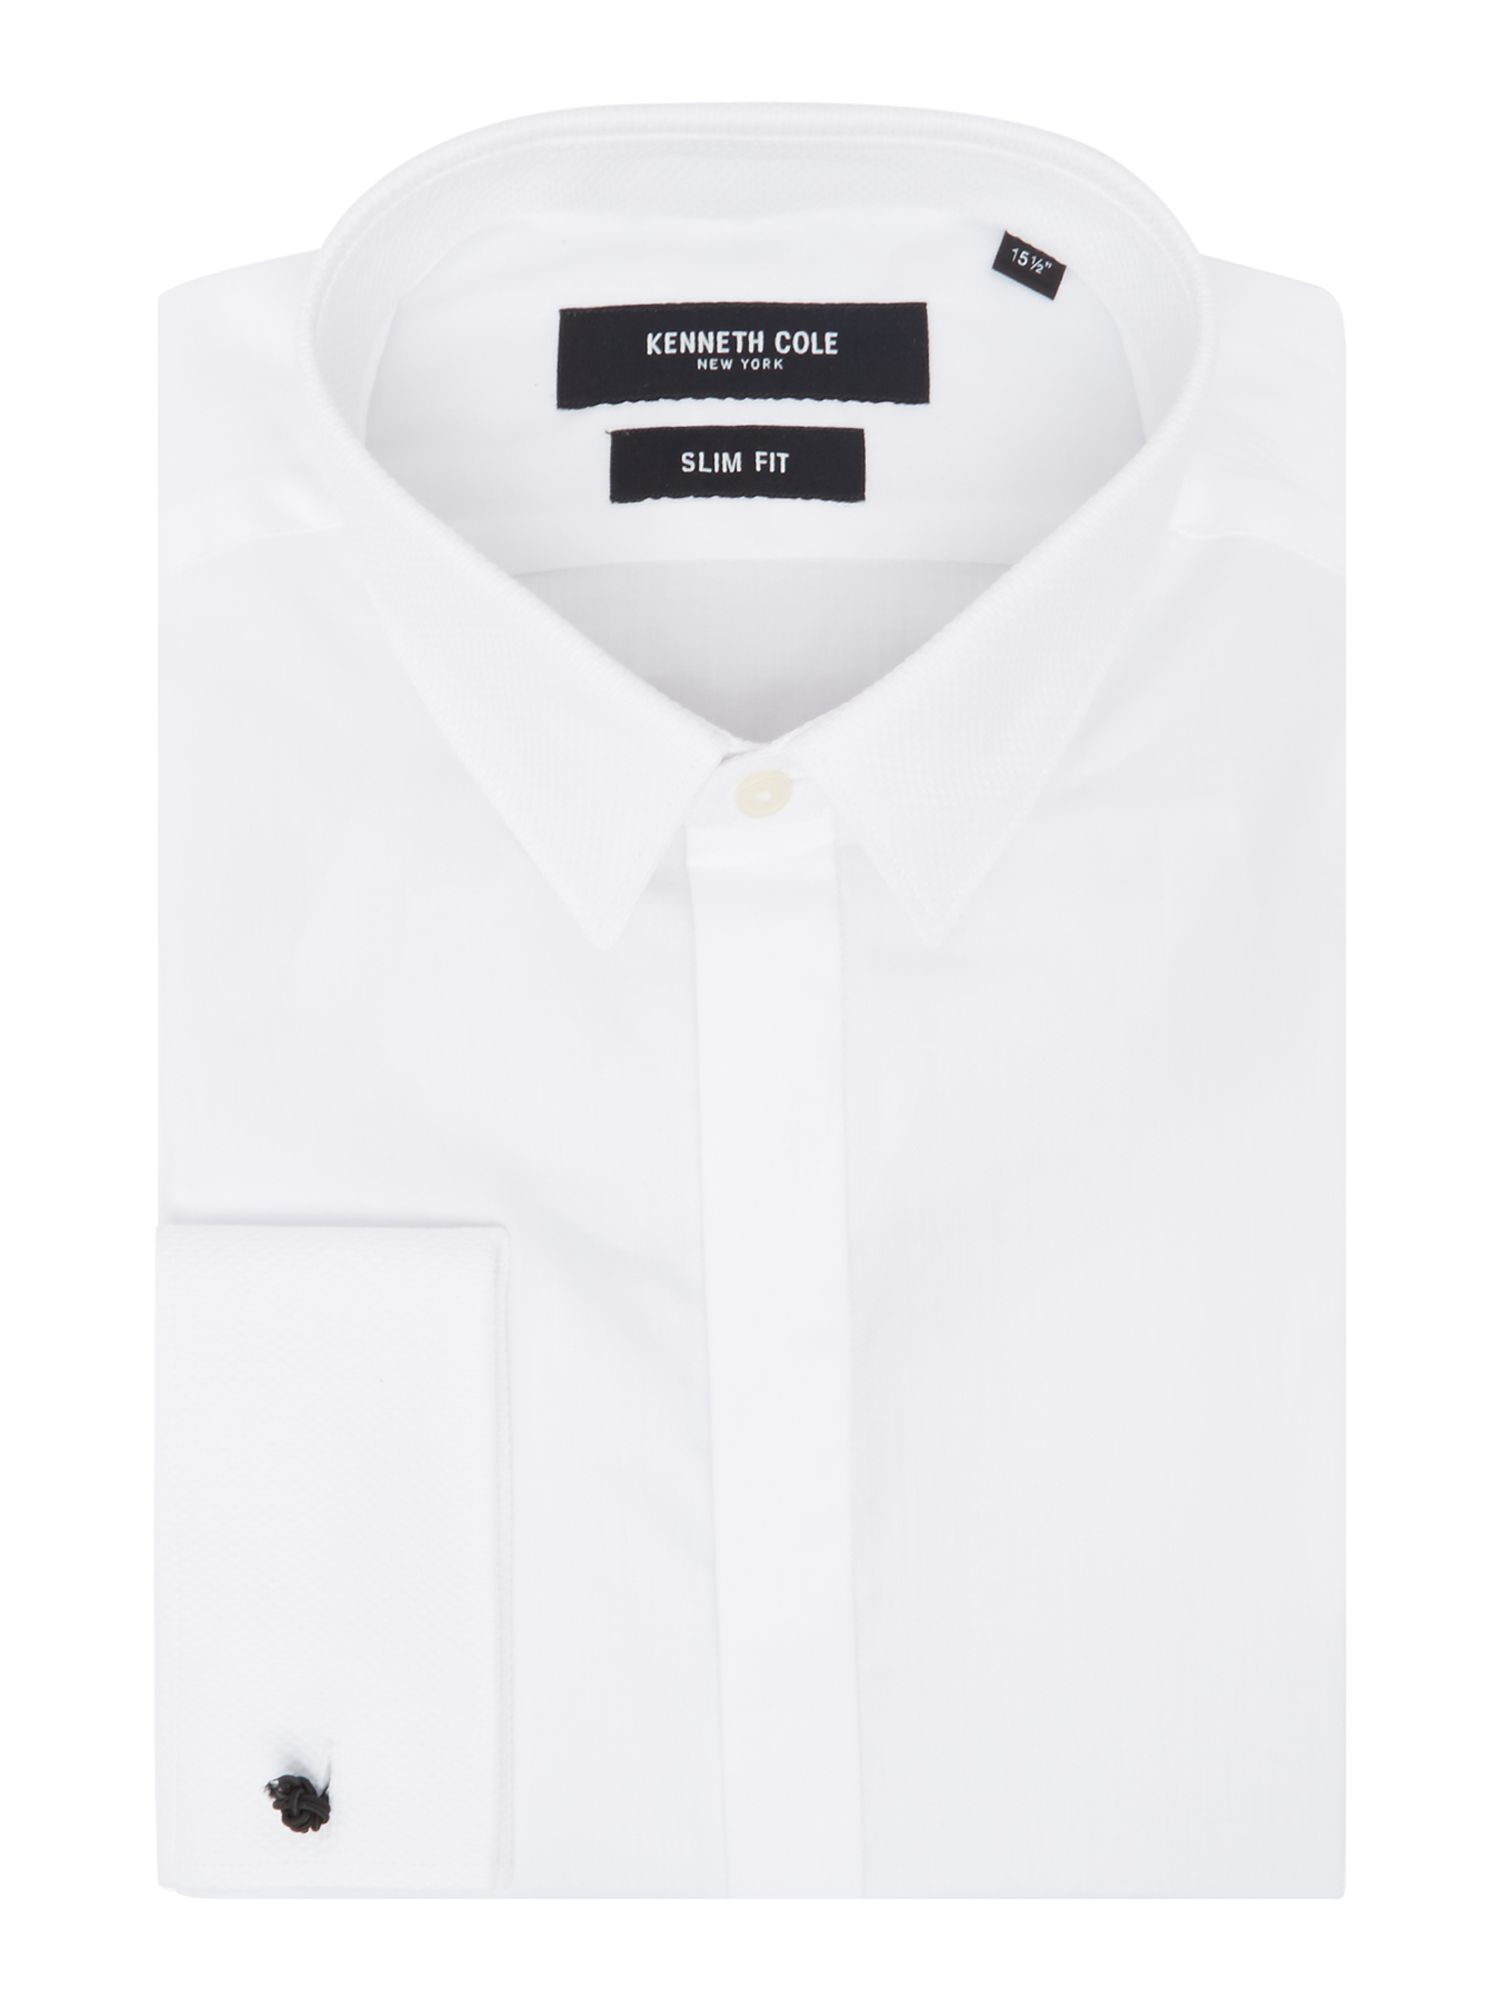 Mens Kenneth Cole Gala slim fit evening shirt with marcella collar White